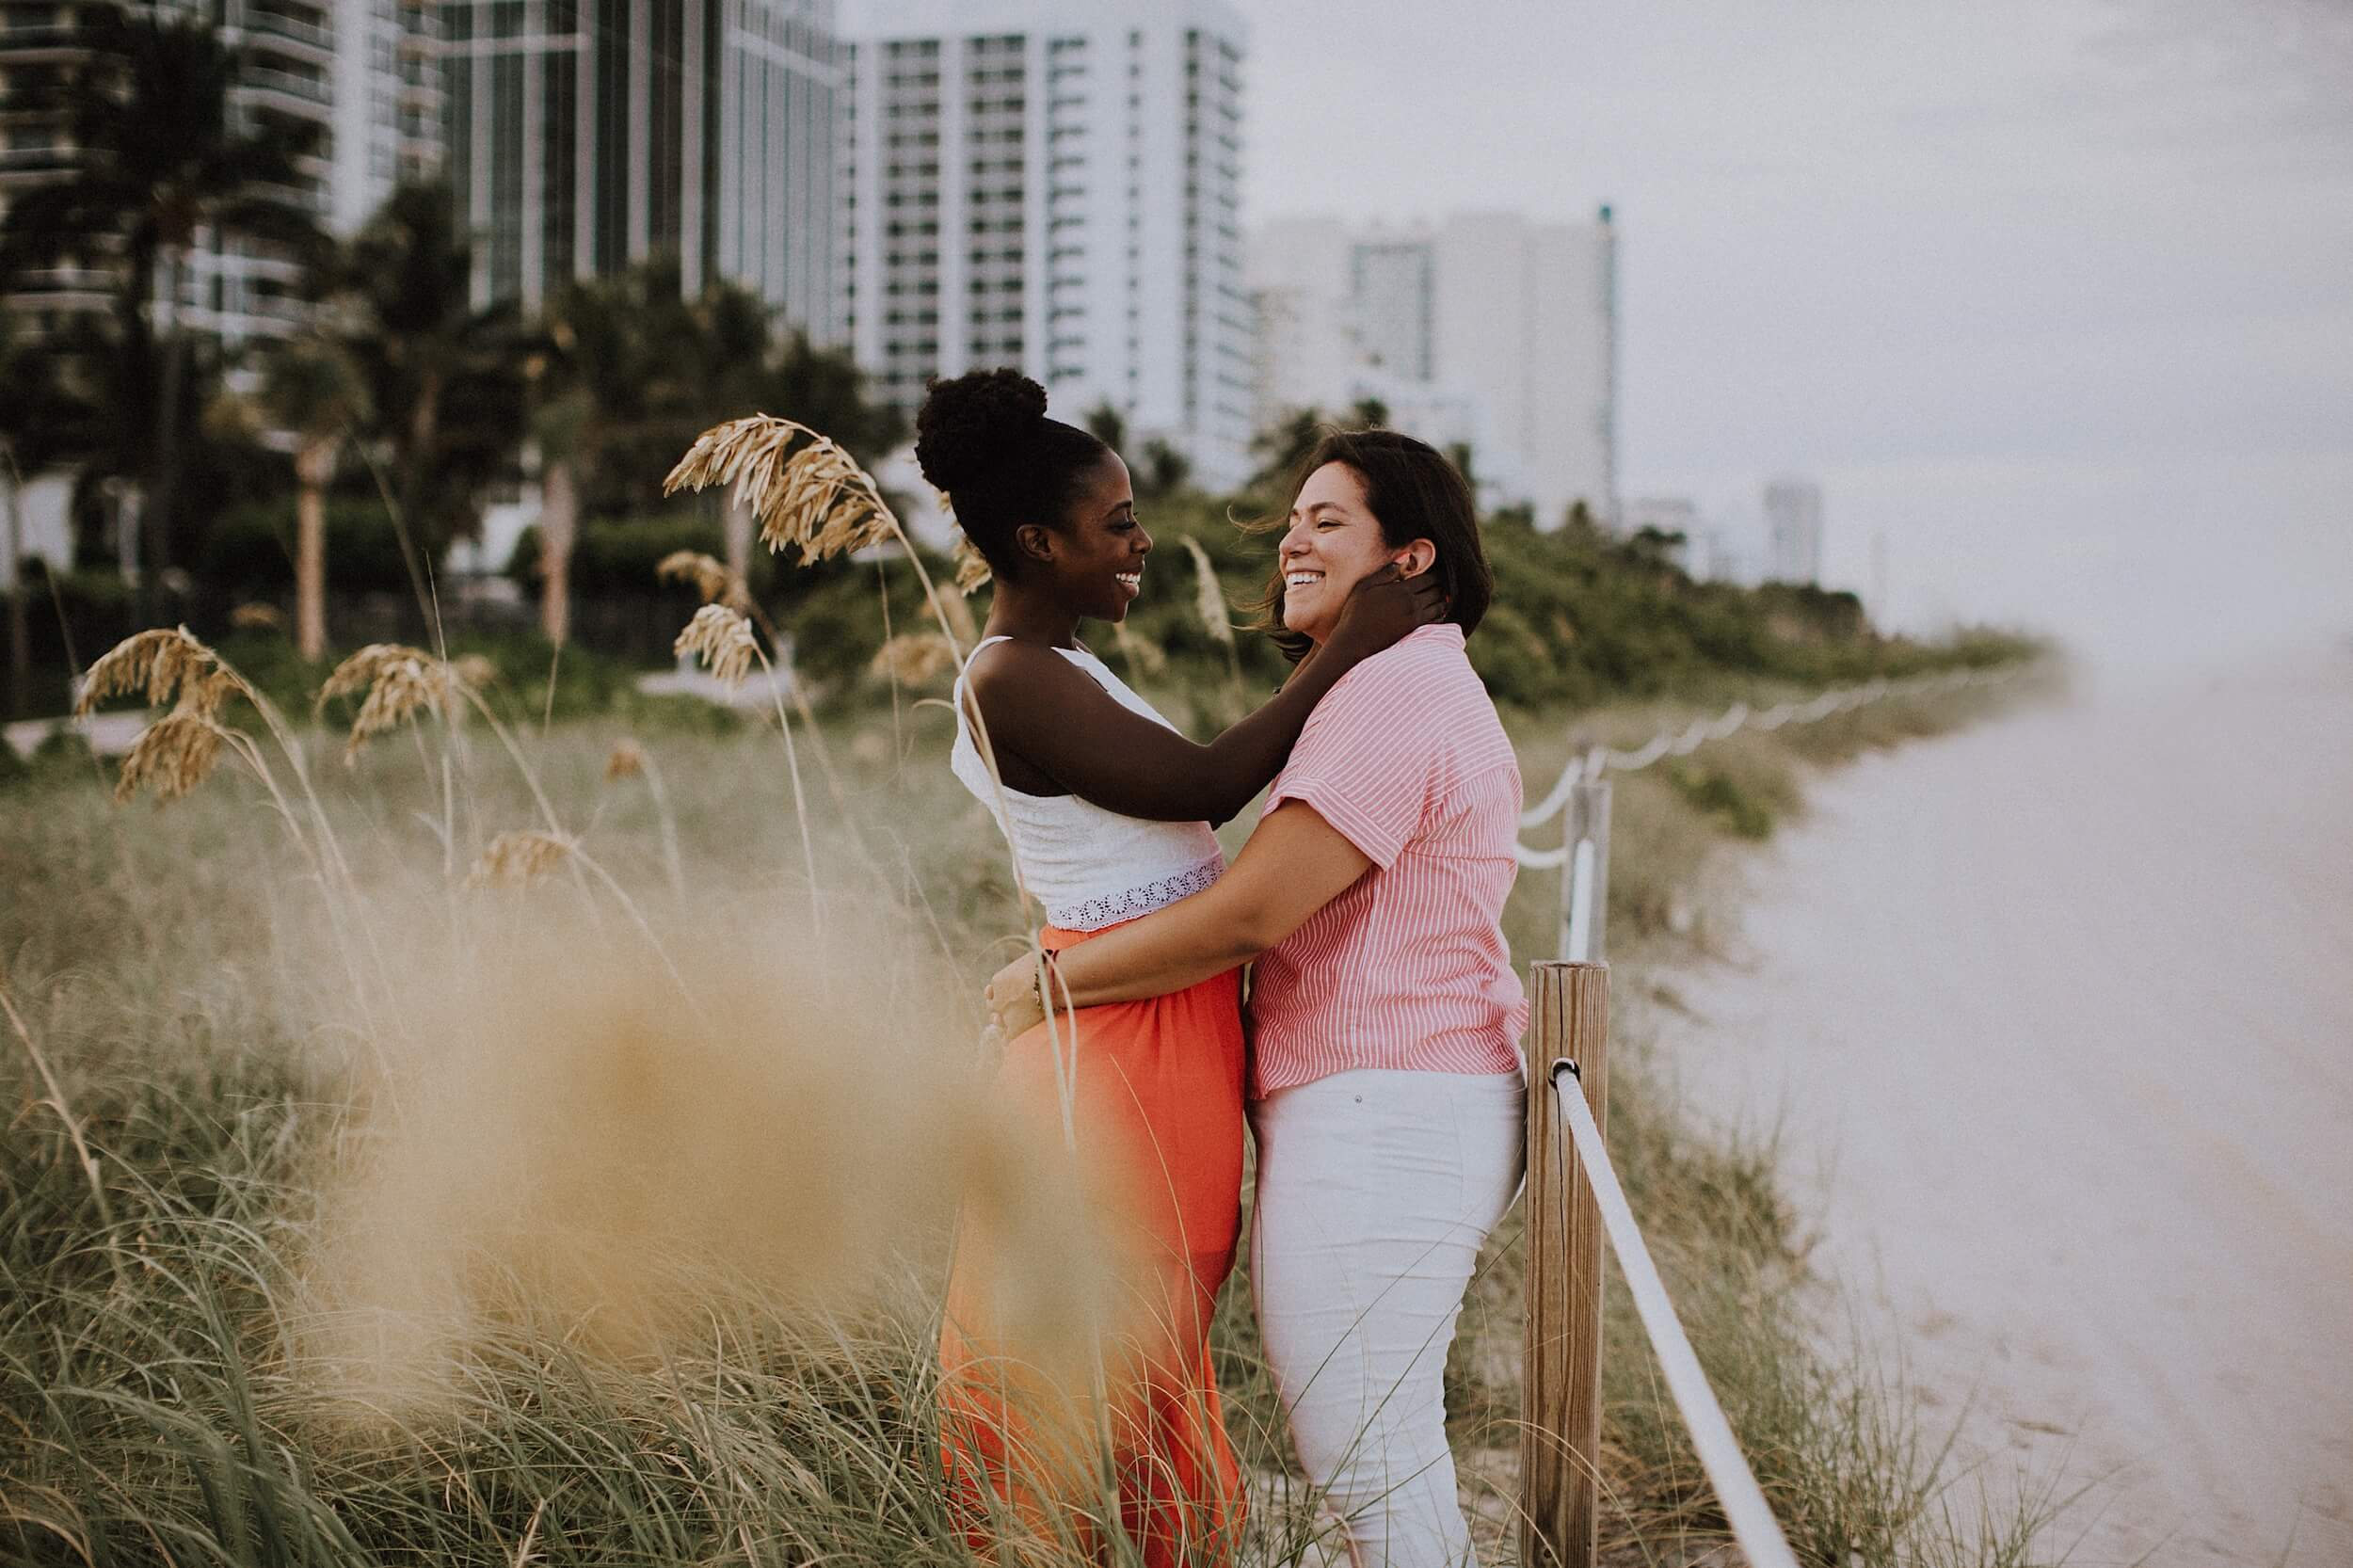 A Lesbian couple embrace on the beach in Miami, USA.